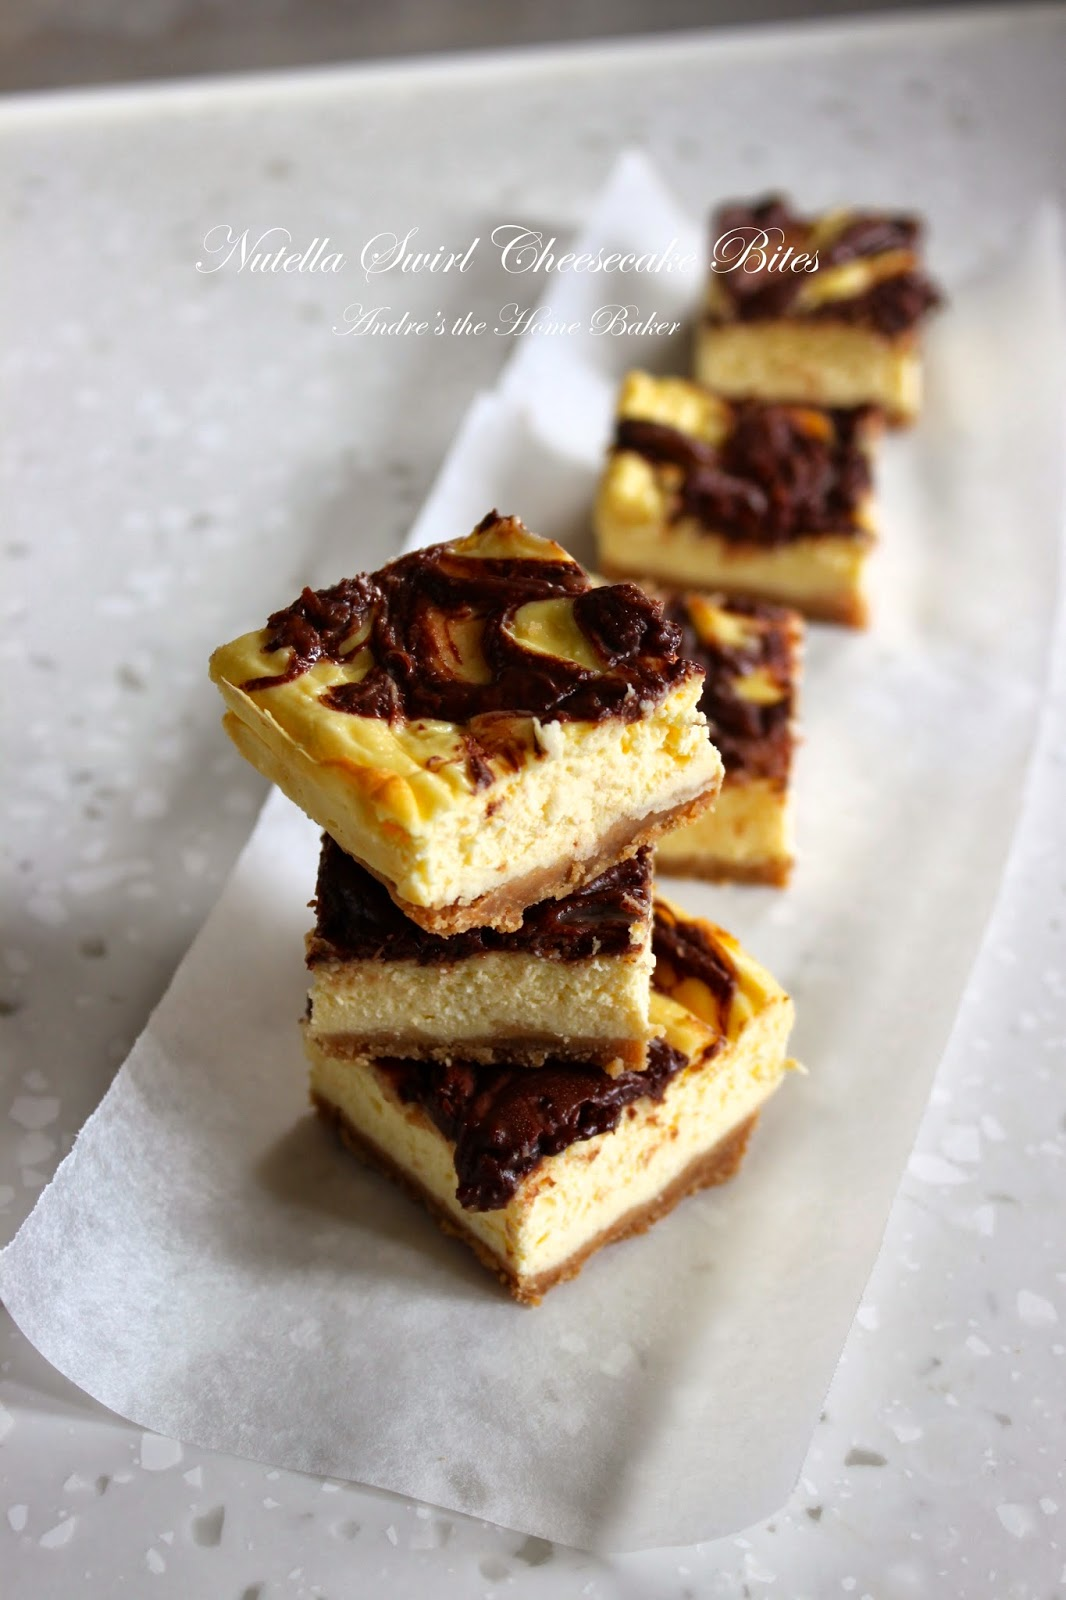 Andre's the Home Baker: ♥ Nutella Swirl Cheesecake Bites ♥